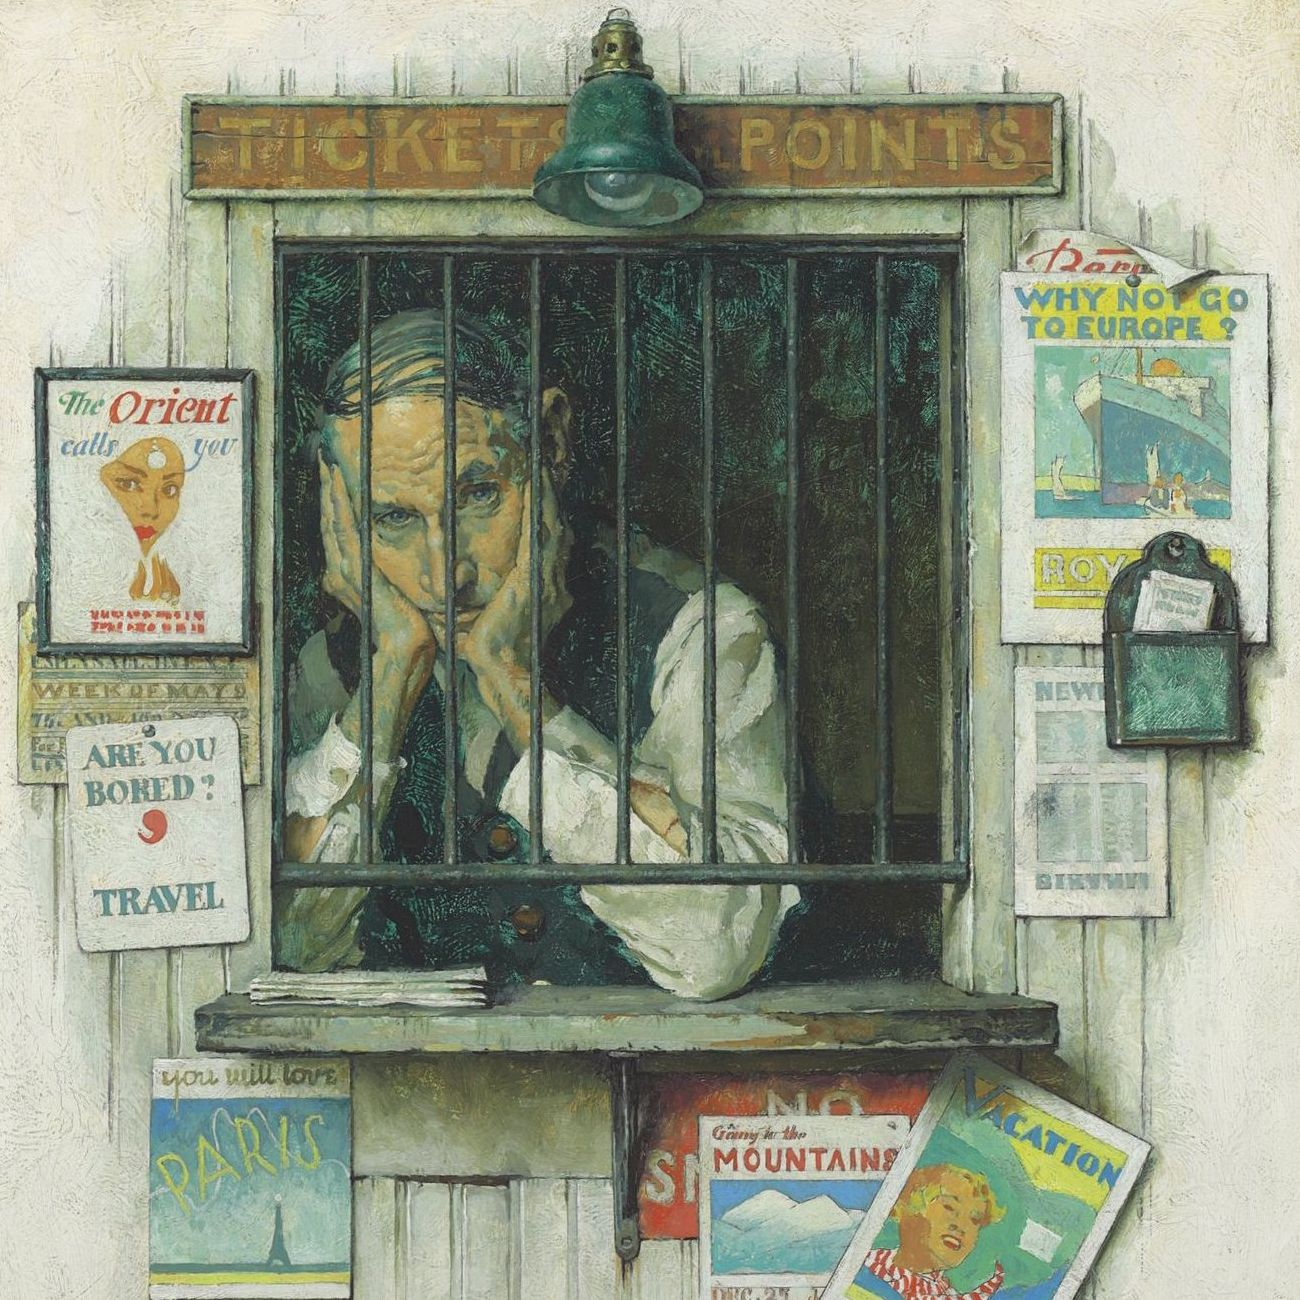 Normal Rockwell's painting, The Ticket Seller,depicts a morose man in a Ticket Agency surrounded by posters advertising travel destinations in Europe and around the world. Business is slow because travel was not as attainable during the Great Depression.